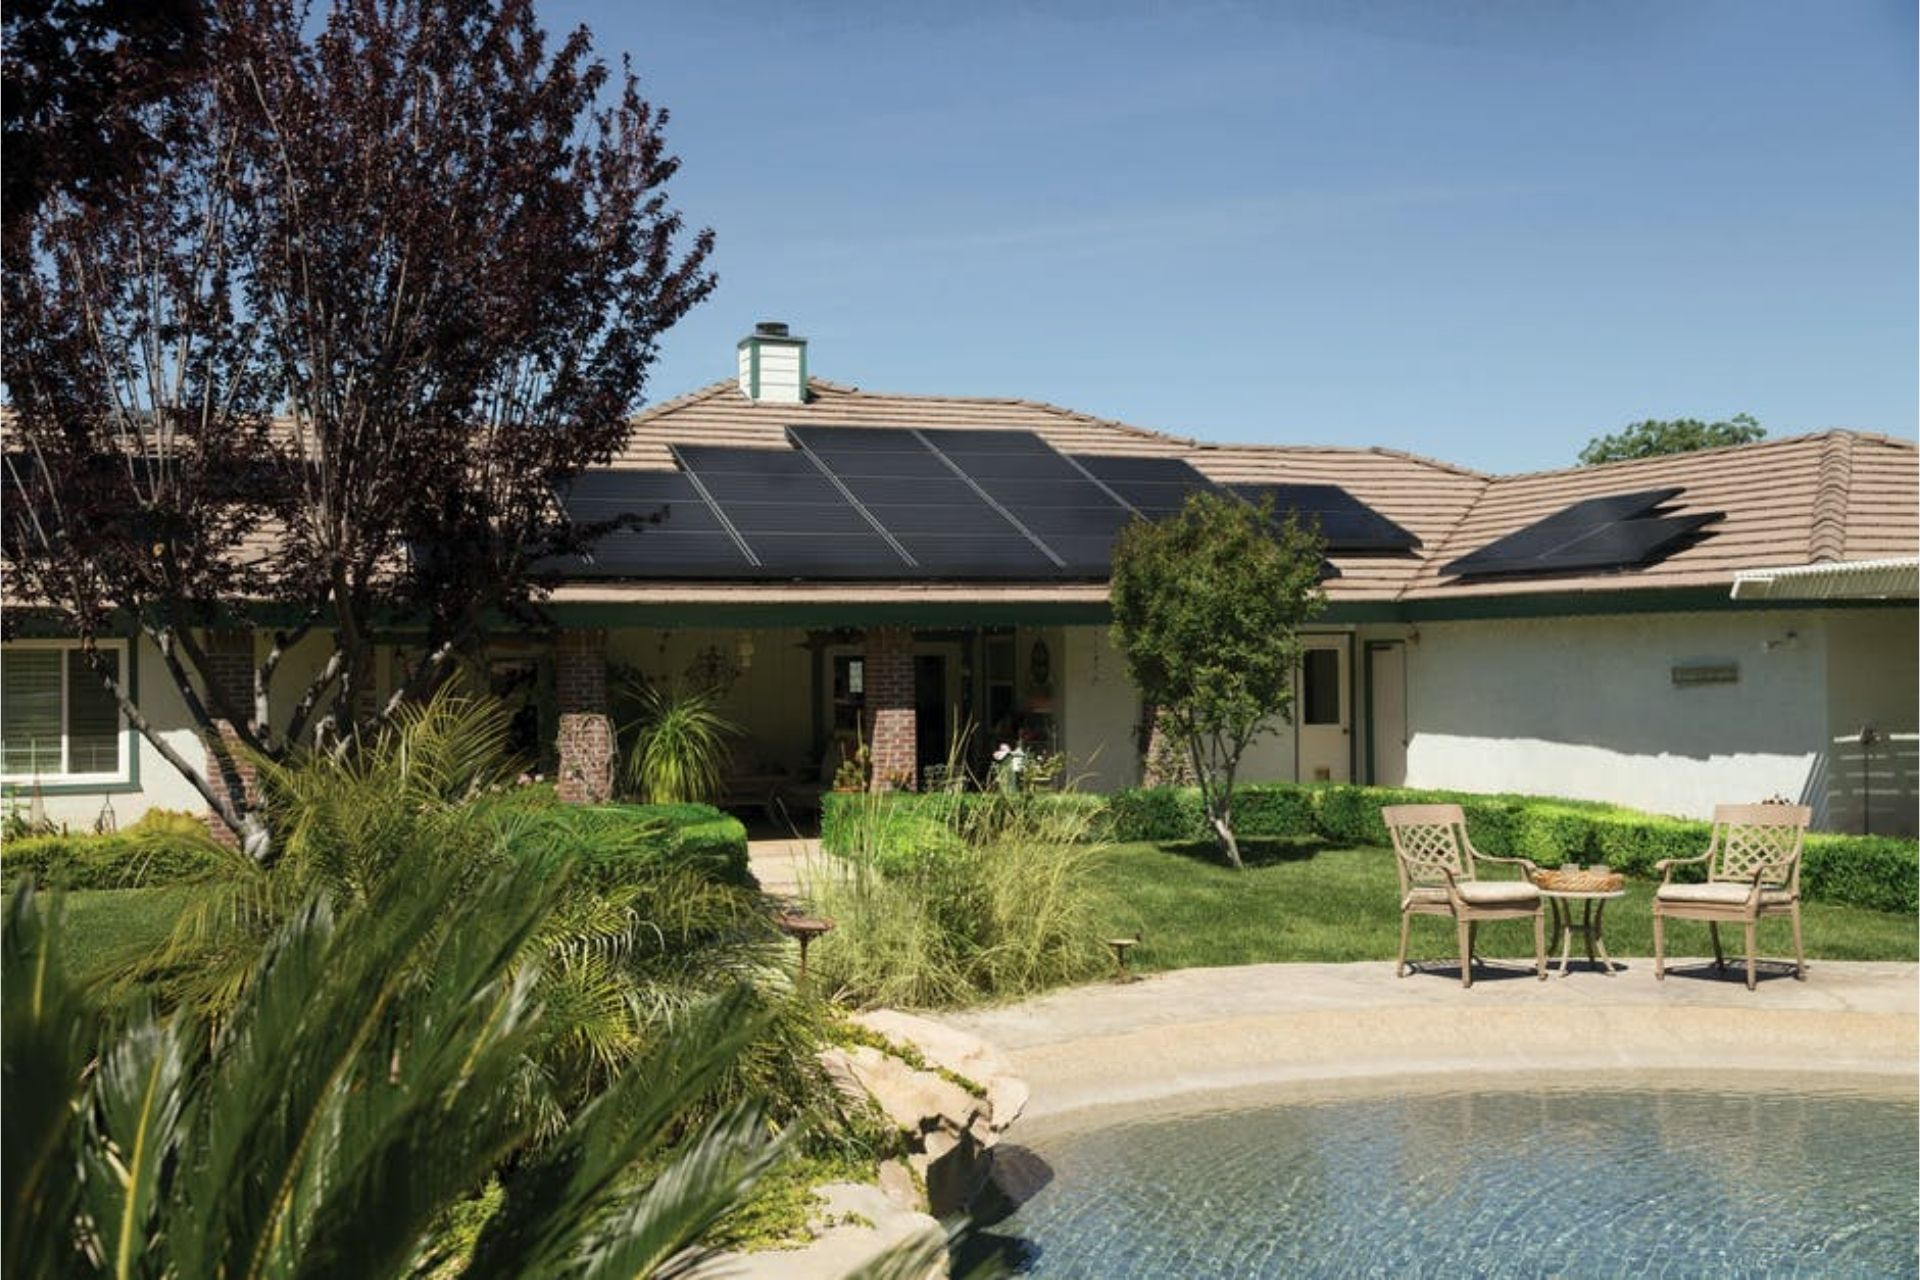 How-to-Turn-an-Existing-Property-into-a-Net-Zero-Home